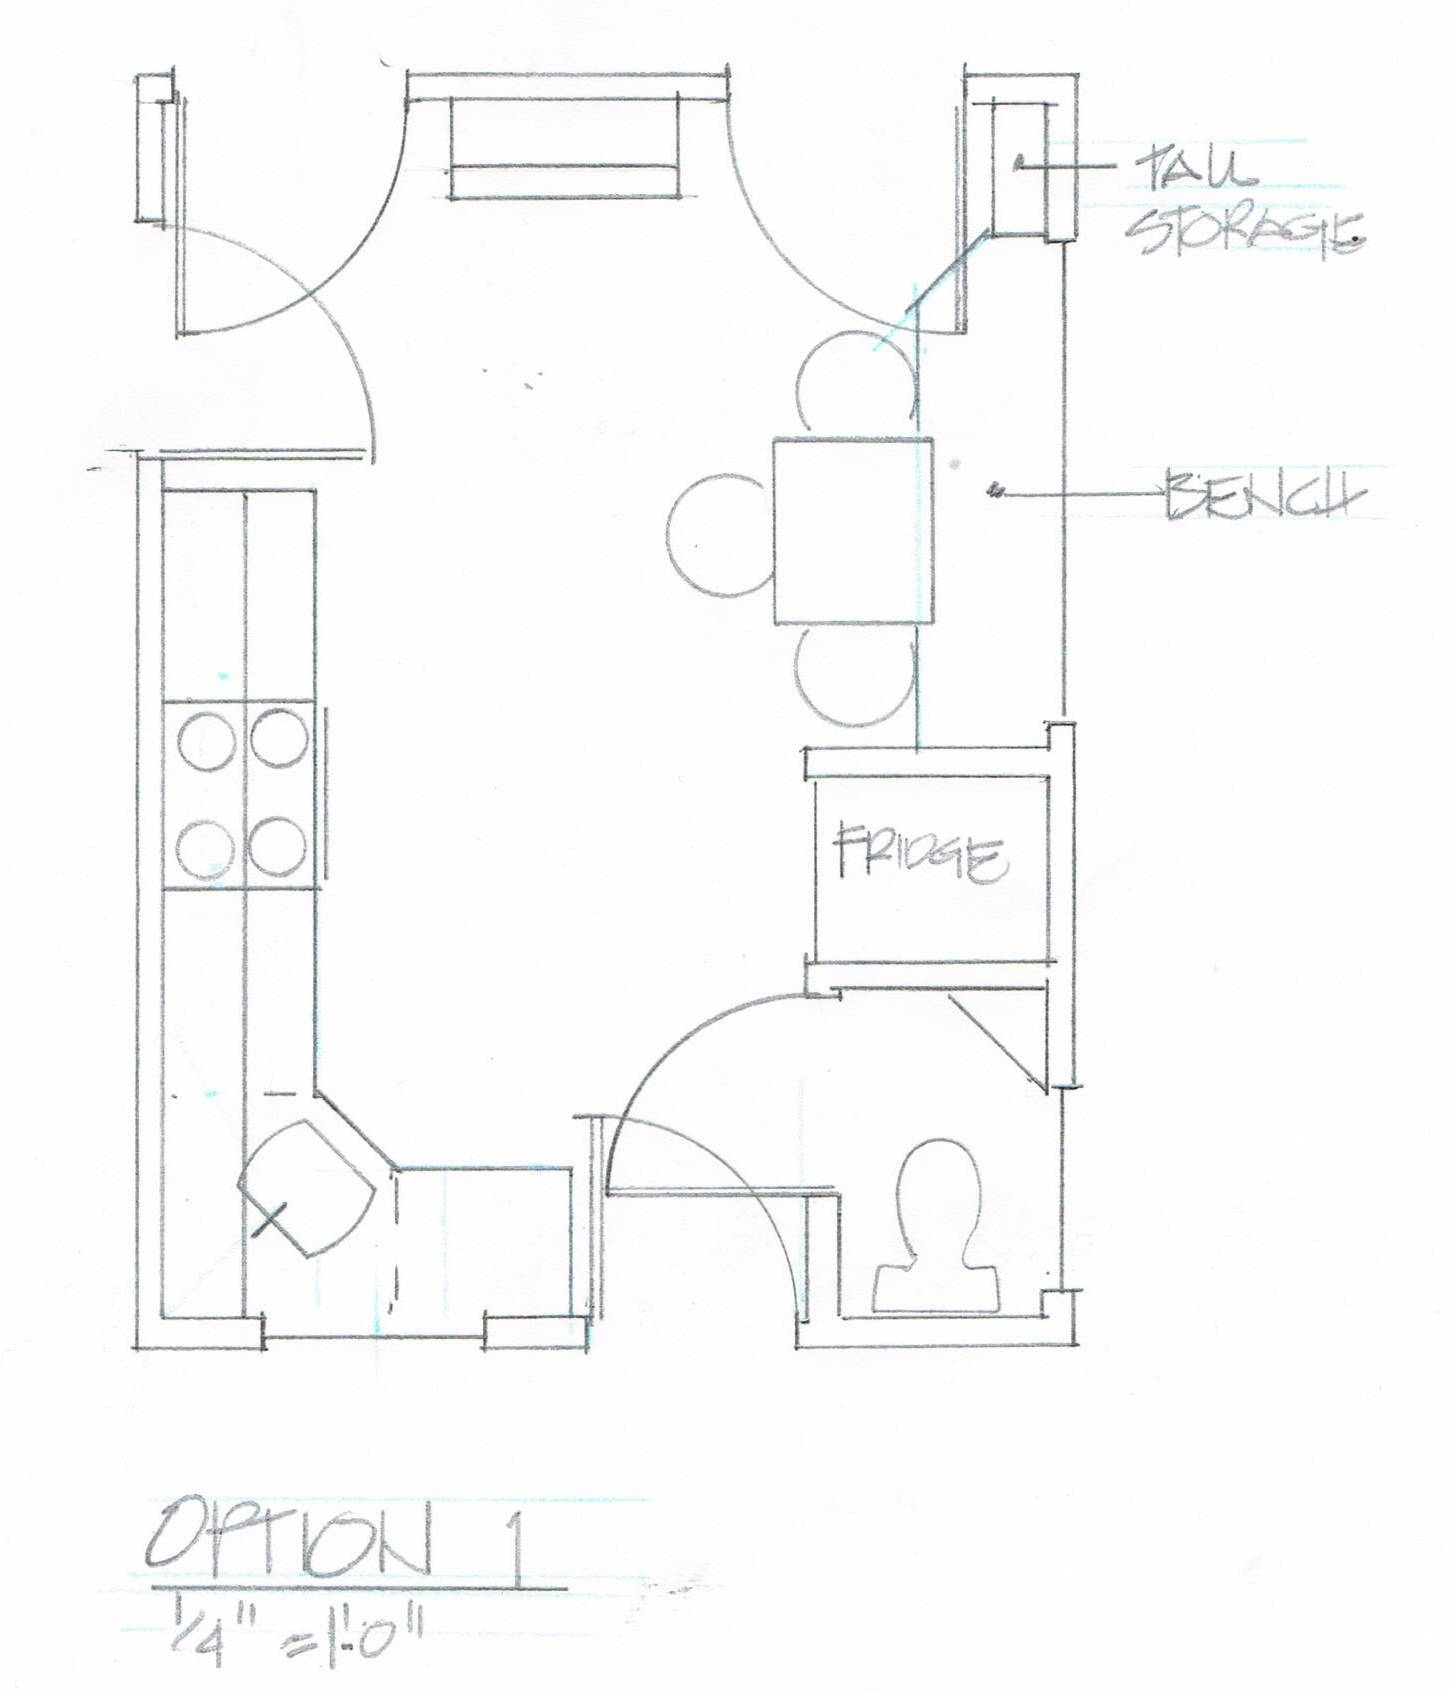 Kitchen Clients Drawing Autocad Archicad Planner Designs Kitchen Layouts Blueprint Portfolio Kitchens Design Ideas The Philosophy Of Online Kitchen Layout (Image 3 of 31)